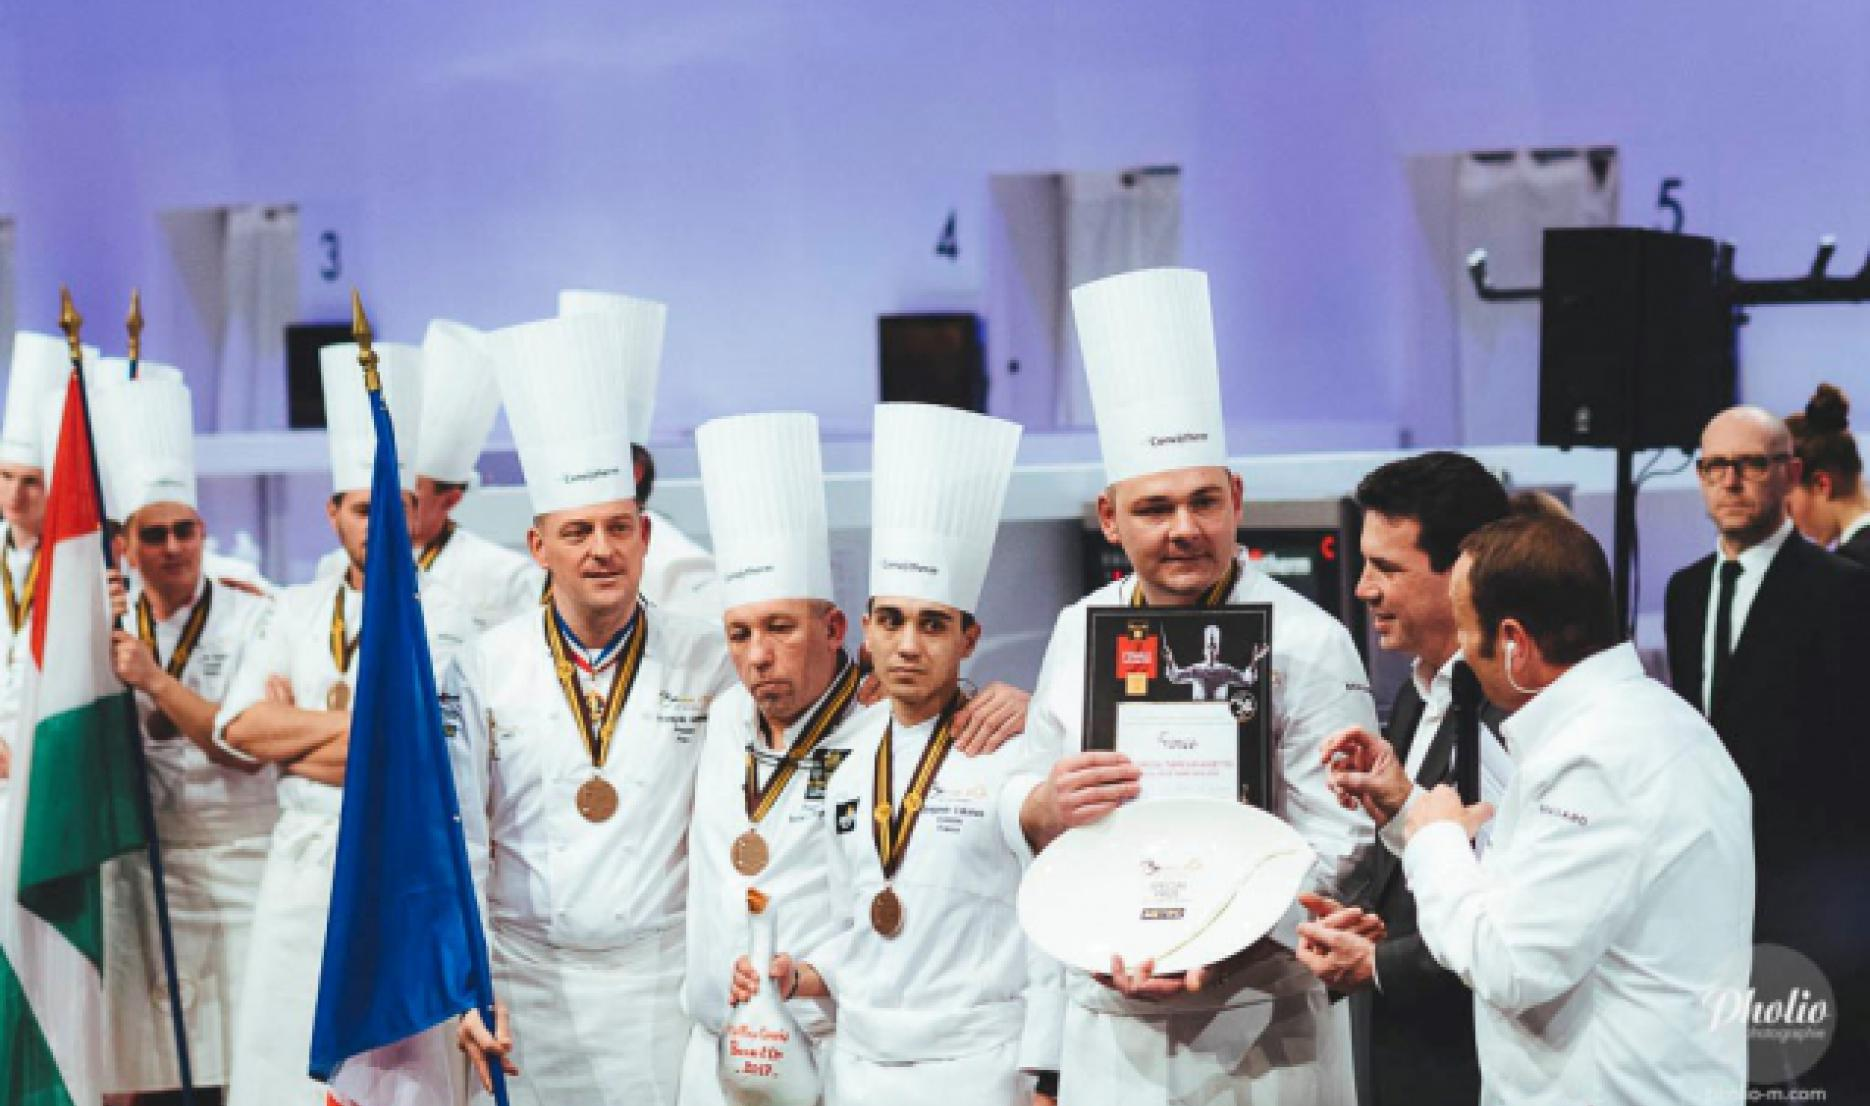 Benjamin Vakanas, Prize for the best second - Bocuse d'or 2017